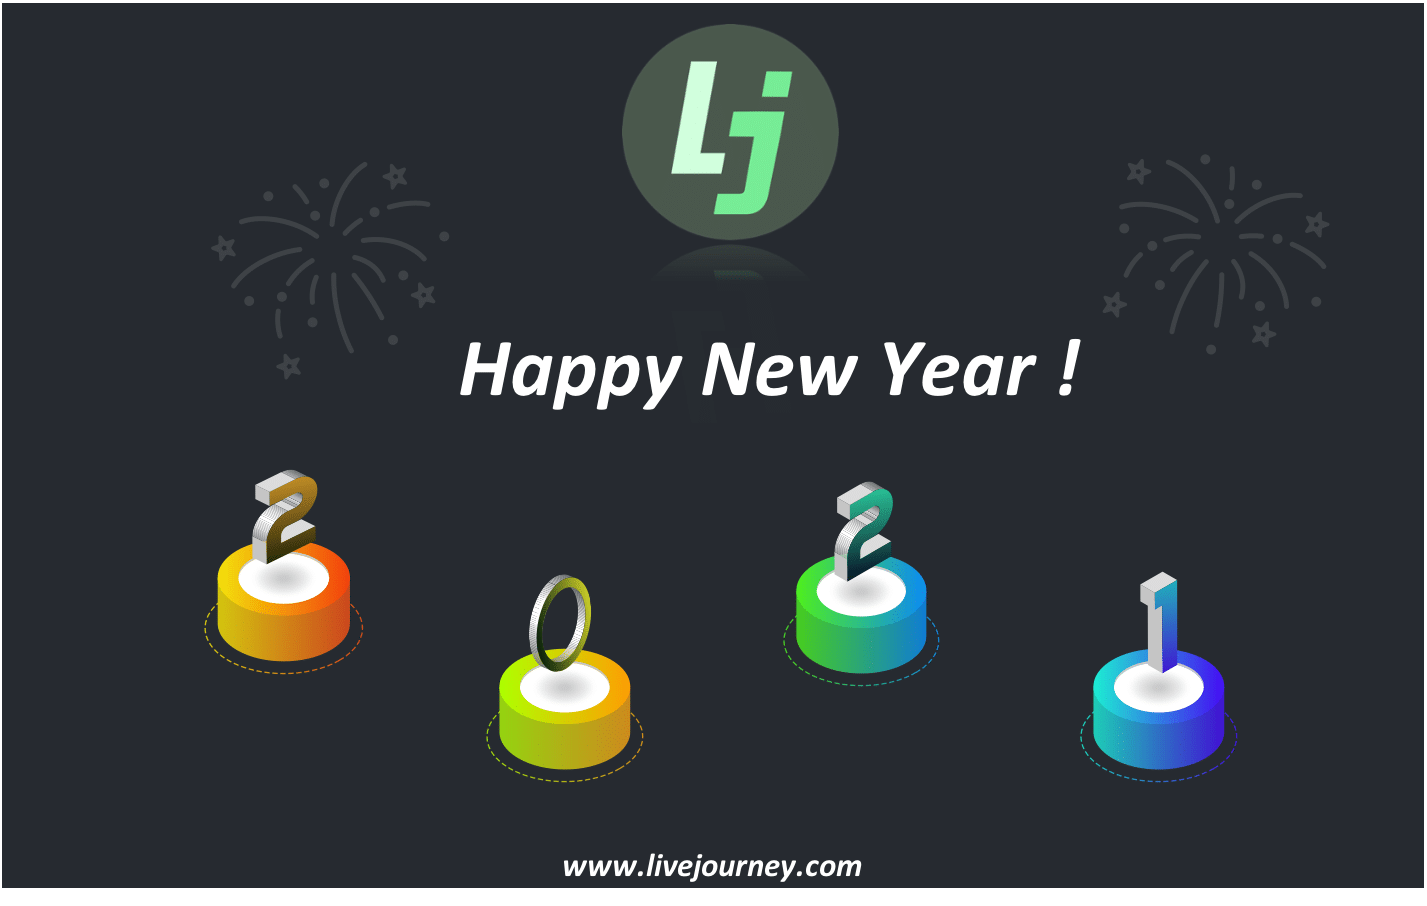 Livejourney wishes you an Happy New Year 2021